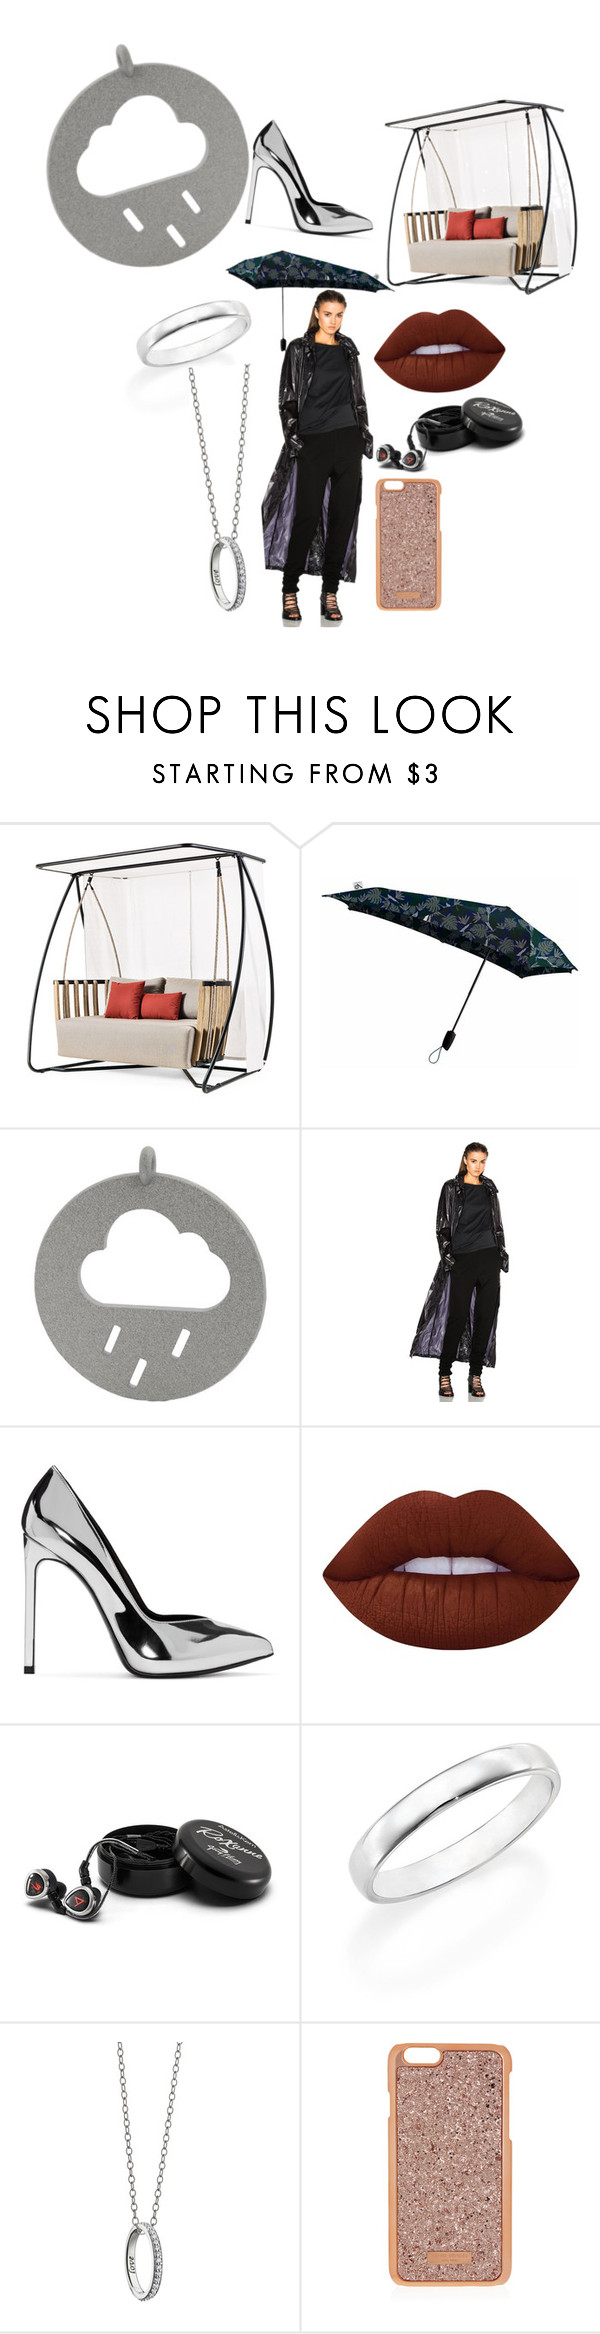 """RAIN MEMORIES"" by fabiolachance ❤ liked on Polyvore featuring Ethimo, Minimal, Ann Demeulemeester, Yves Saint Laurent, Lime Crime, Astell & Kern, De Beers, Monica Rich Kosann and Henri Bendel"